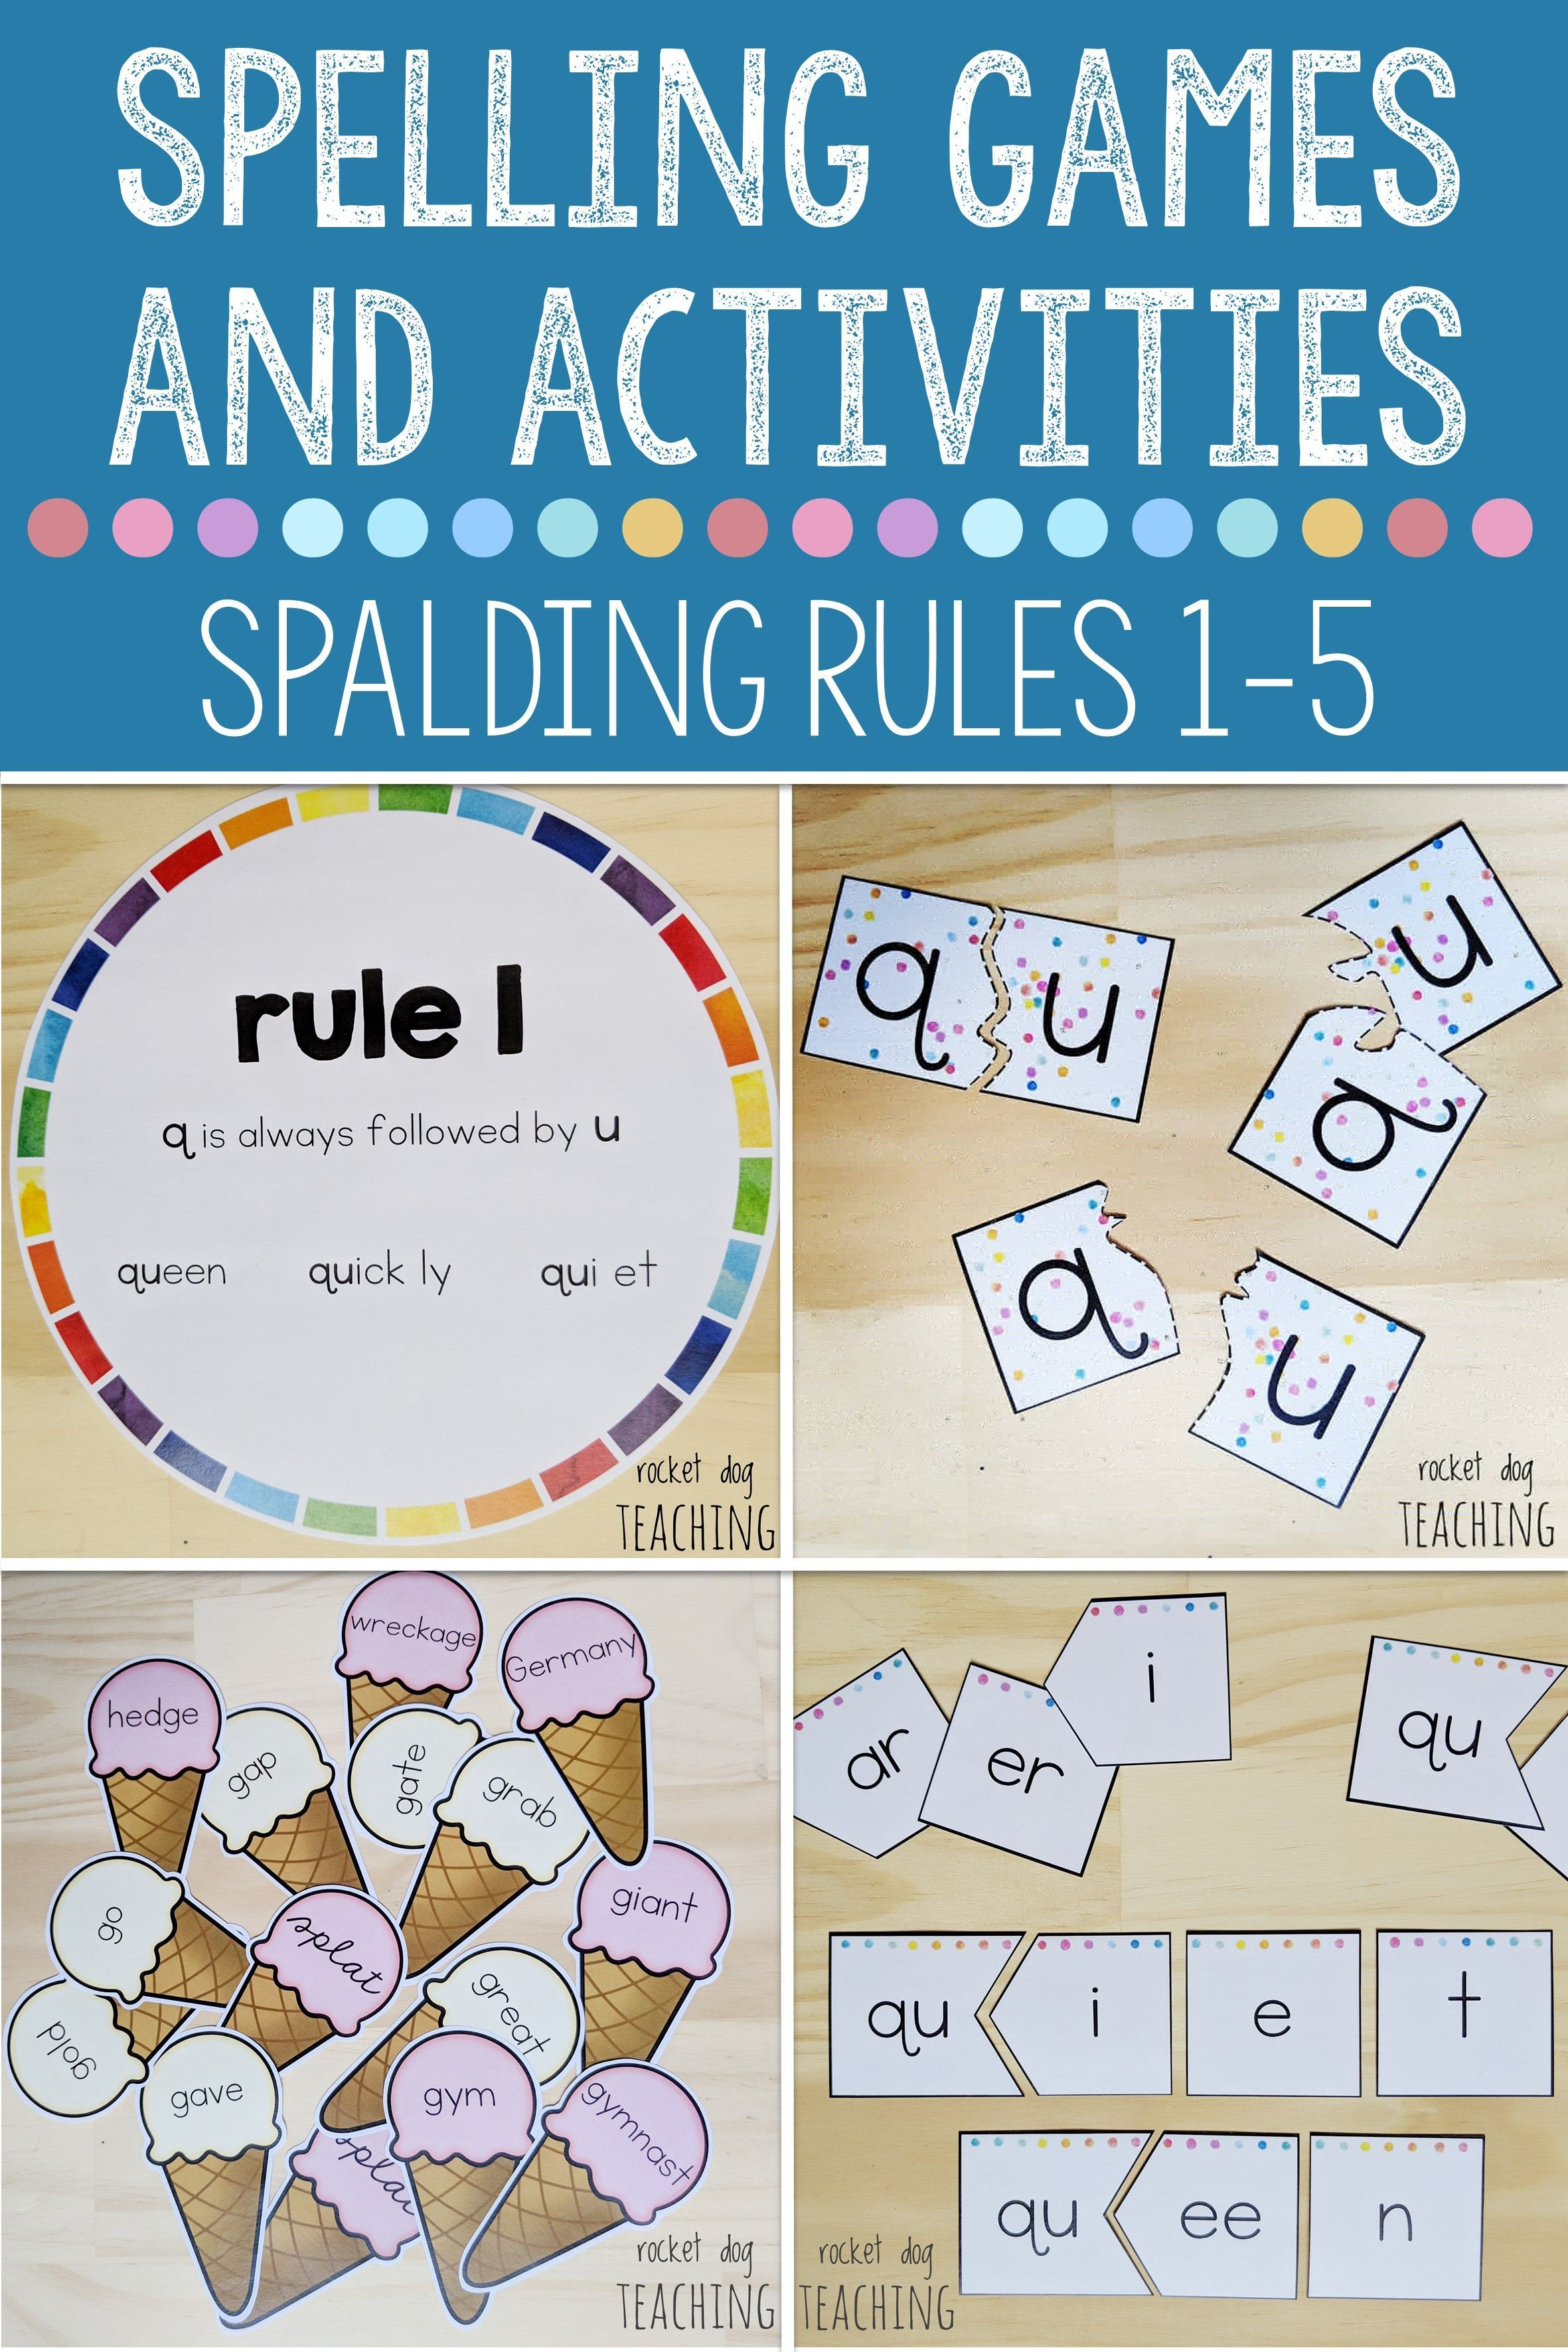 Spelling Rules Games And Activities Rules 1 To 5 For